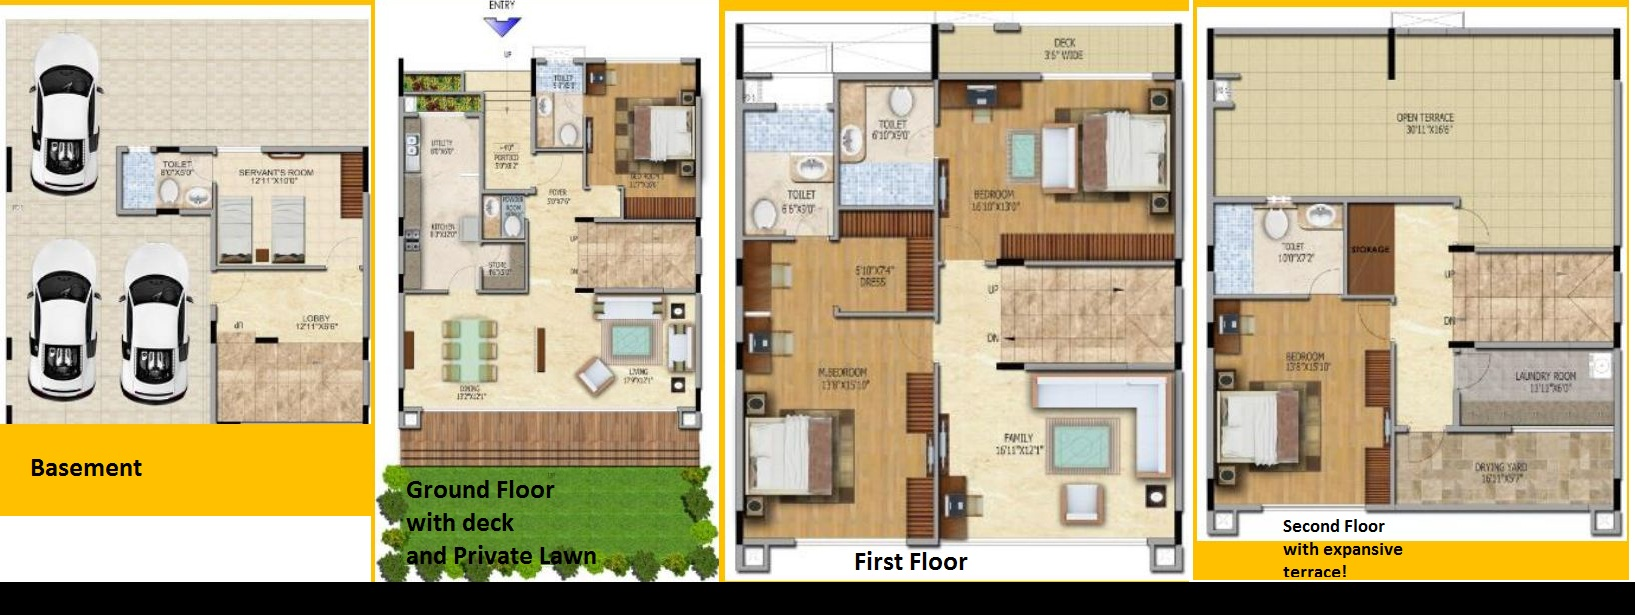 4 bhk villas flat resale hennur road salarpuria for 4 bhk villas in bangalore